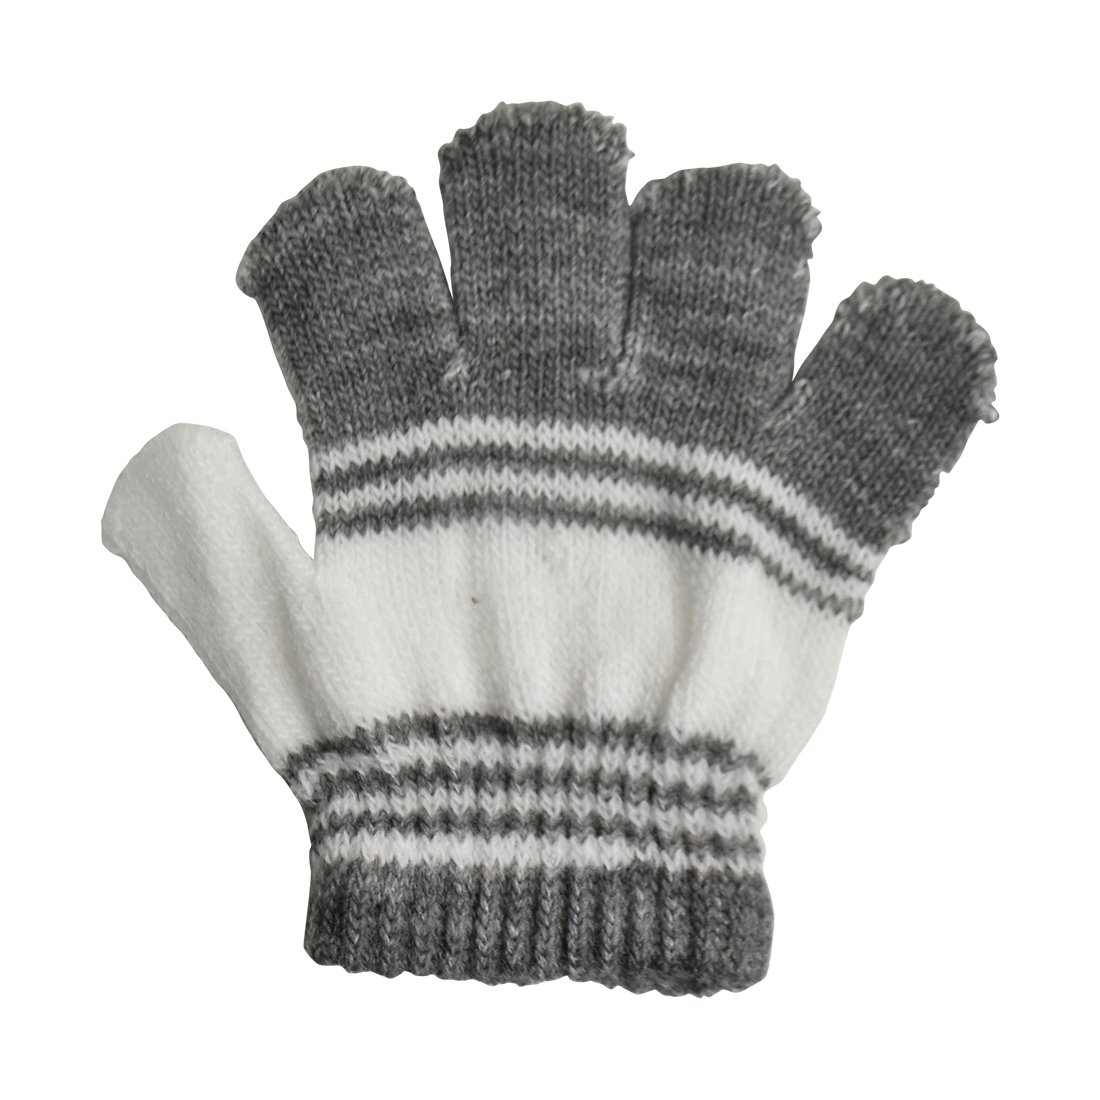 84831acd0b05 Amazon.com  Striped Infant Gloves for Baby Toddler Winter Glove